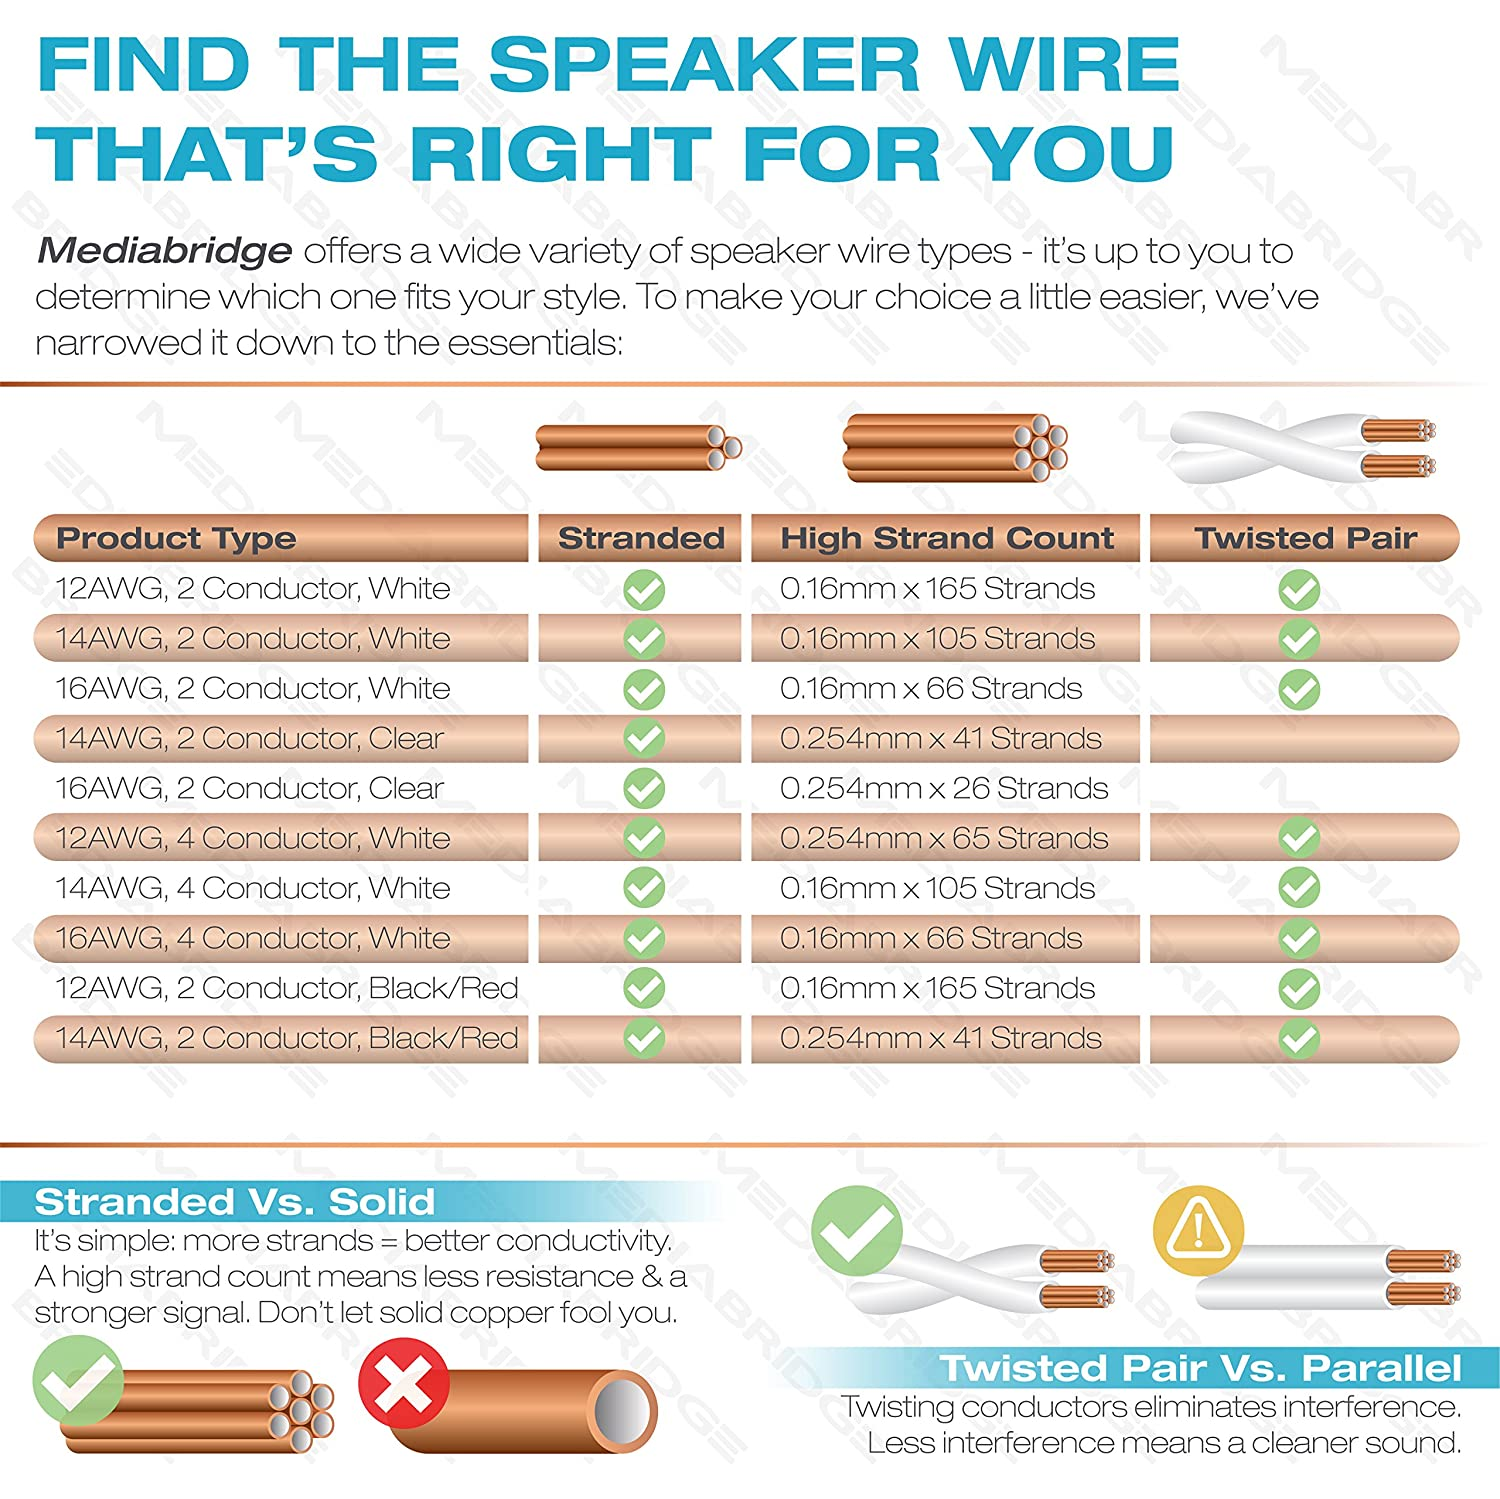 91eMJDEeeiL._SL1500_ amazon com mediabridge 16awg 4 conductor speaker wire (100 feet 4 conductor speaker wire diagram at aneh.co